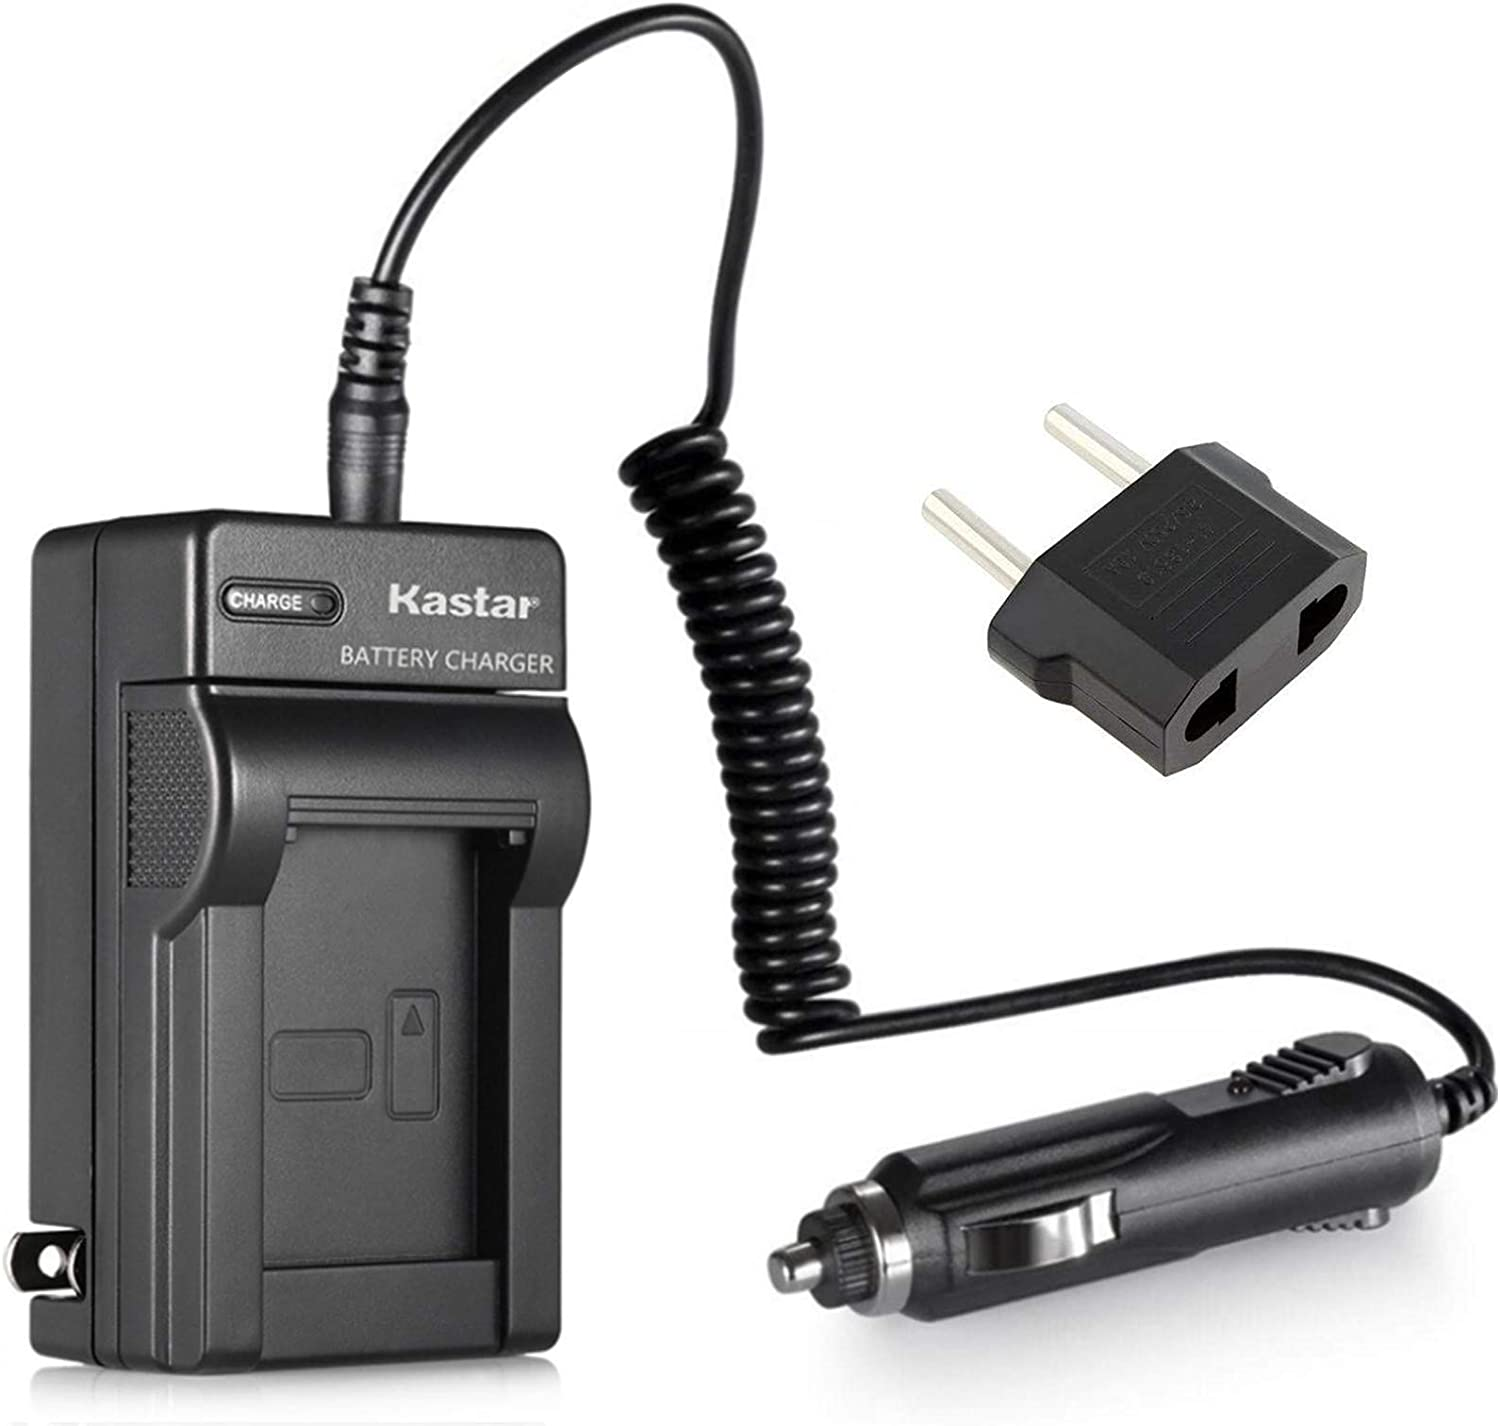 Kastar NP-FP50 FP70 Battery Charger for Sony Handycam DCR-HC21 DCR-HC22 DCR-HC23 DCR-HC24 DCR-HC26 DCR-HC30DCR-HC35 DCR-HC36 DCR-HC39 DCR-HC40 DCR-HC41 DCR-HC42 DCR-HC43 DCR-HC44 DCR-HC46 DCR-HC65